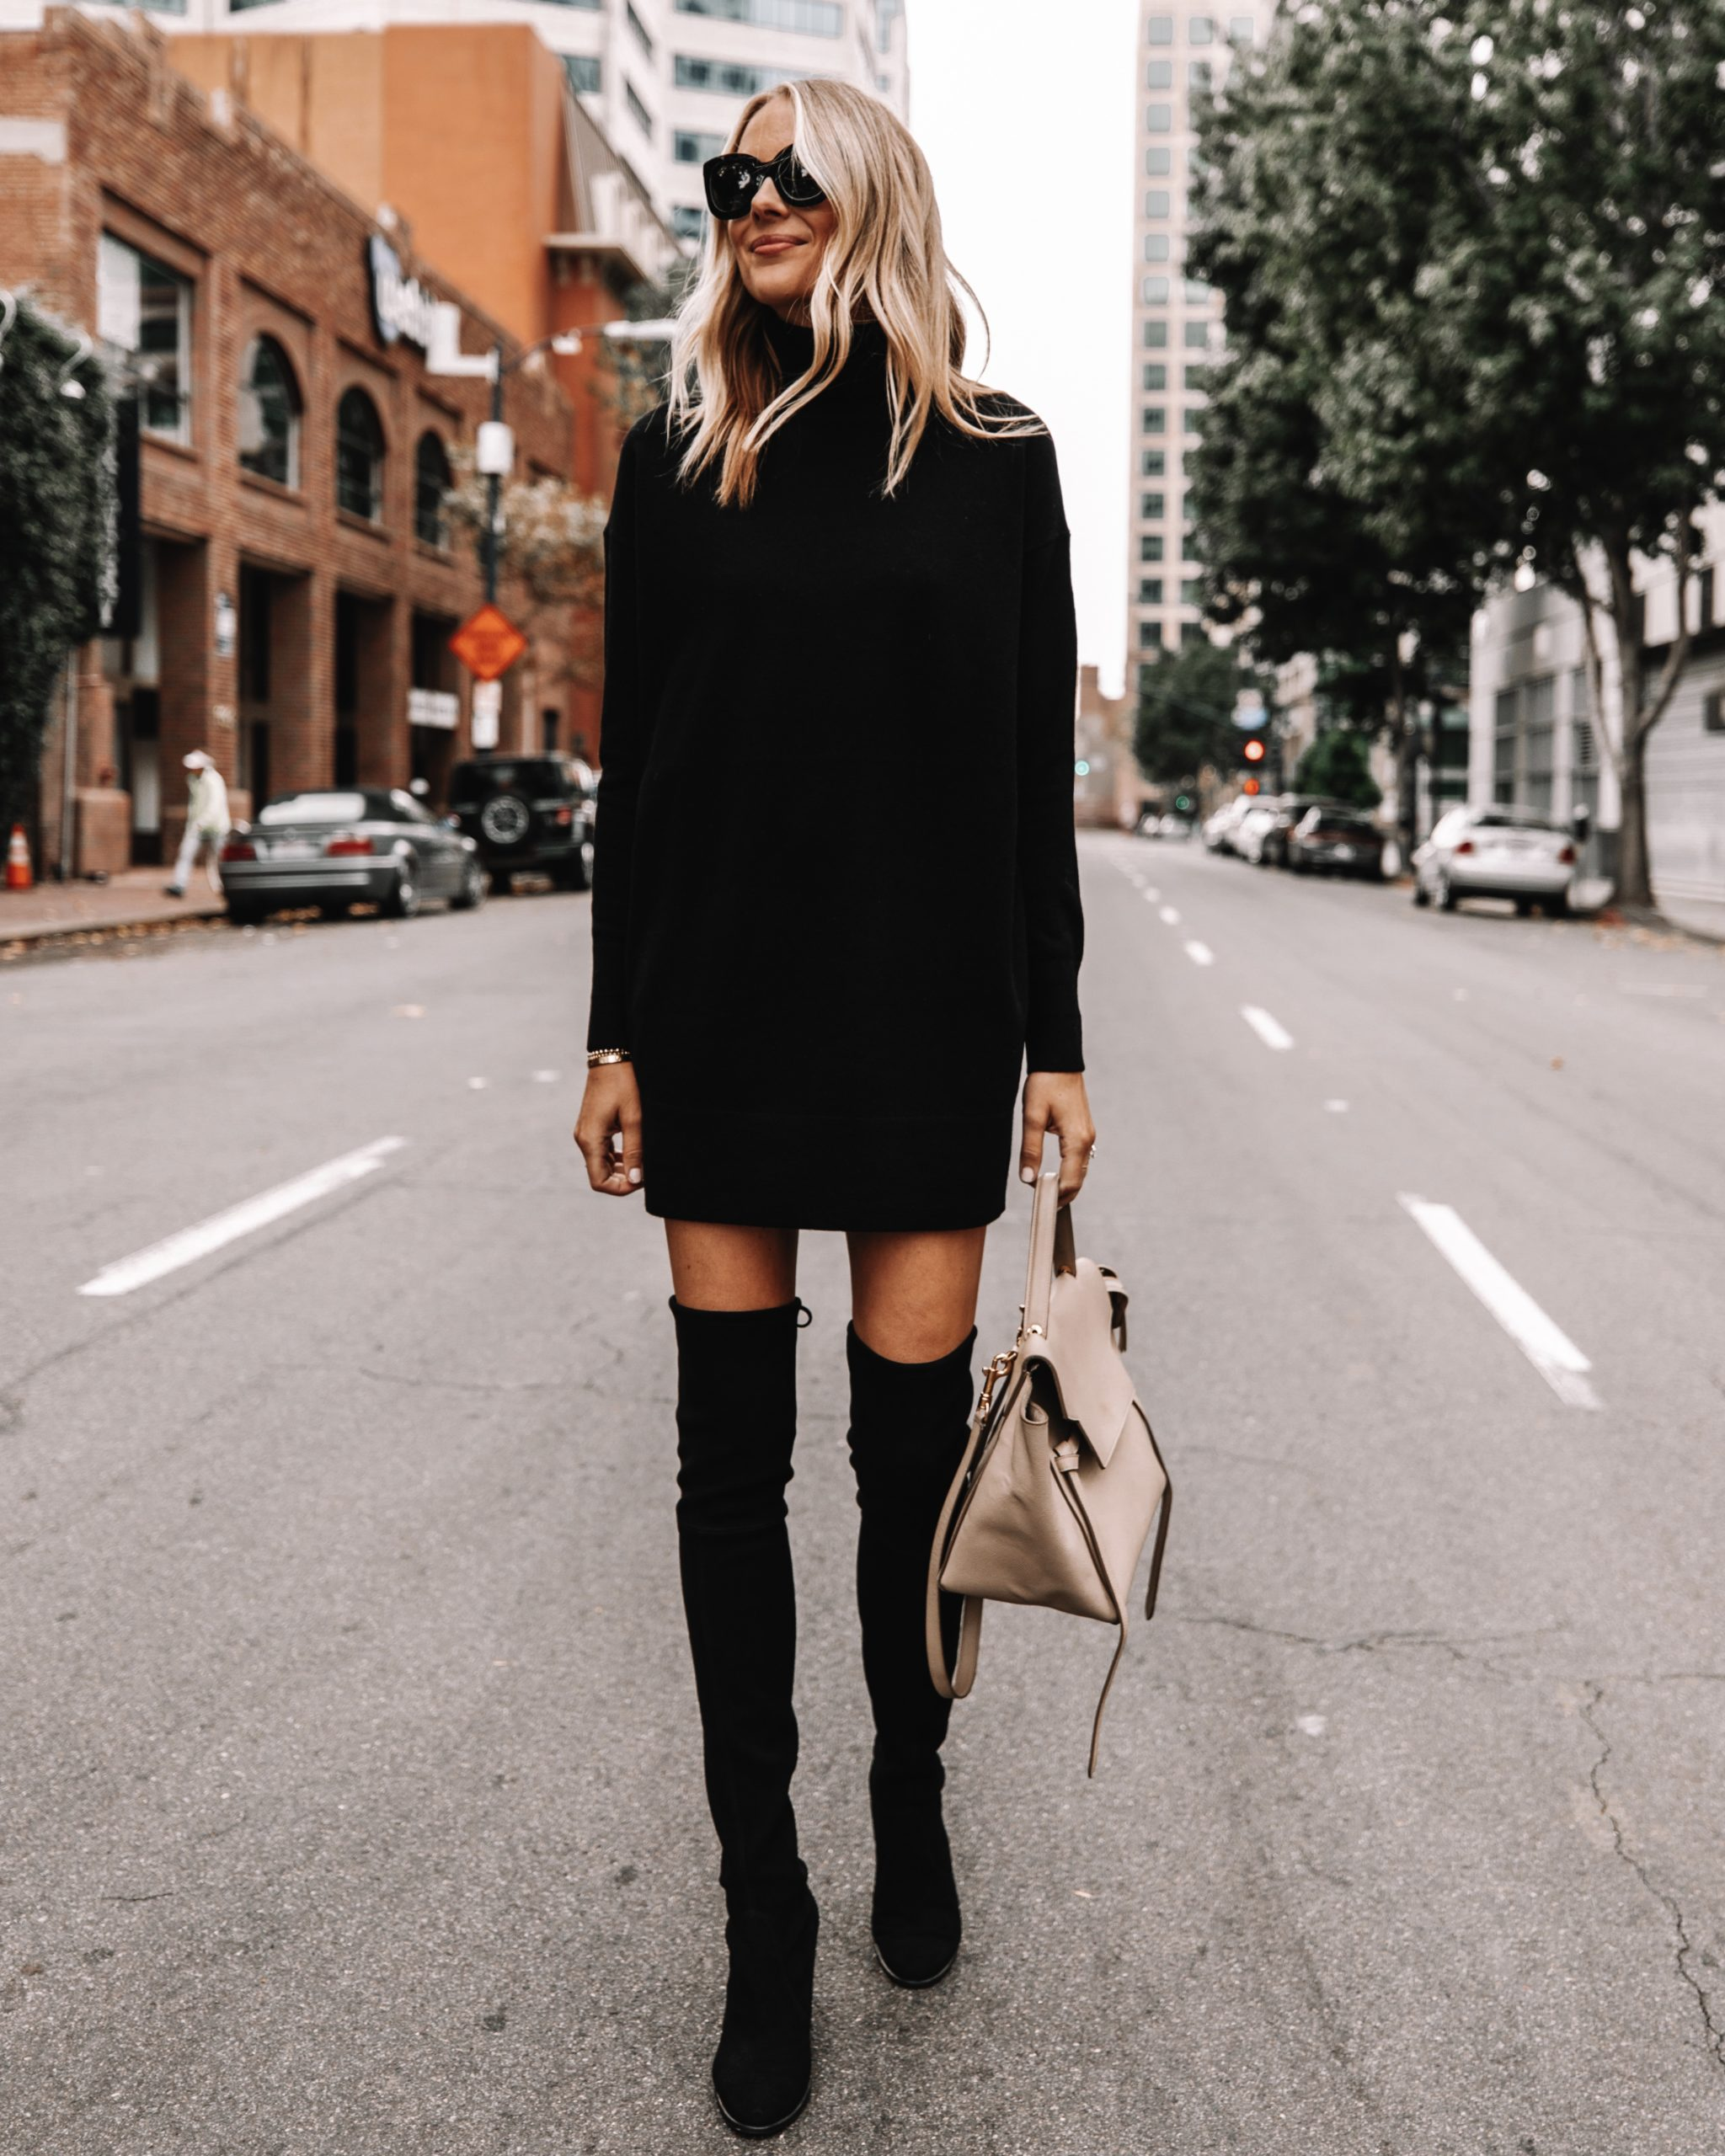 Fashion Jackson Wearing Everlane Black Sweater Dress Black Over the Knee Boots Fall Outfit